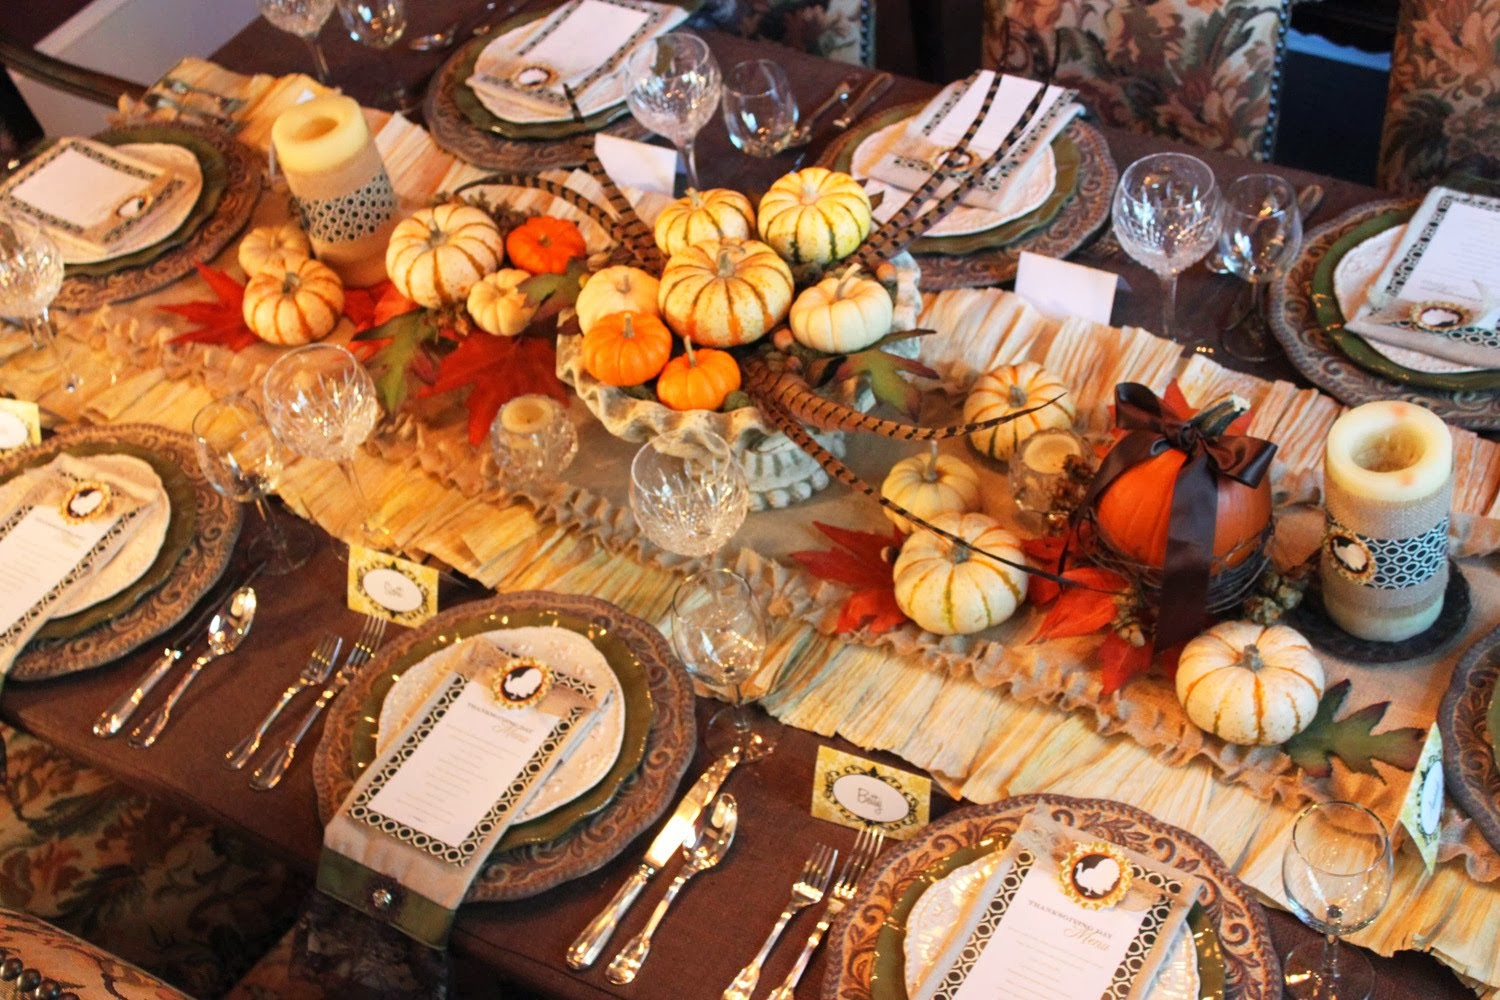 Some ideas for where to eat Thanksgiving dinner in Paris 2013